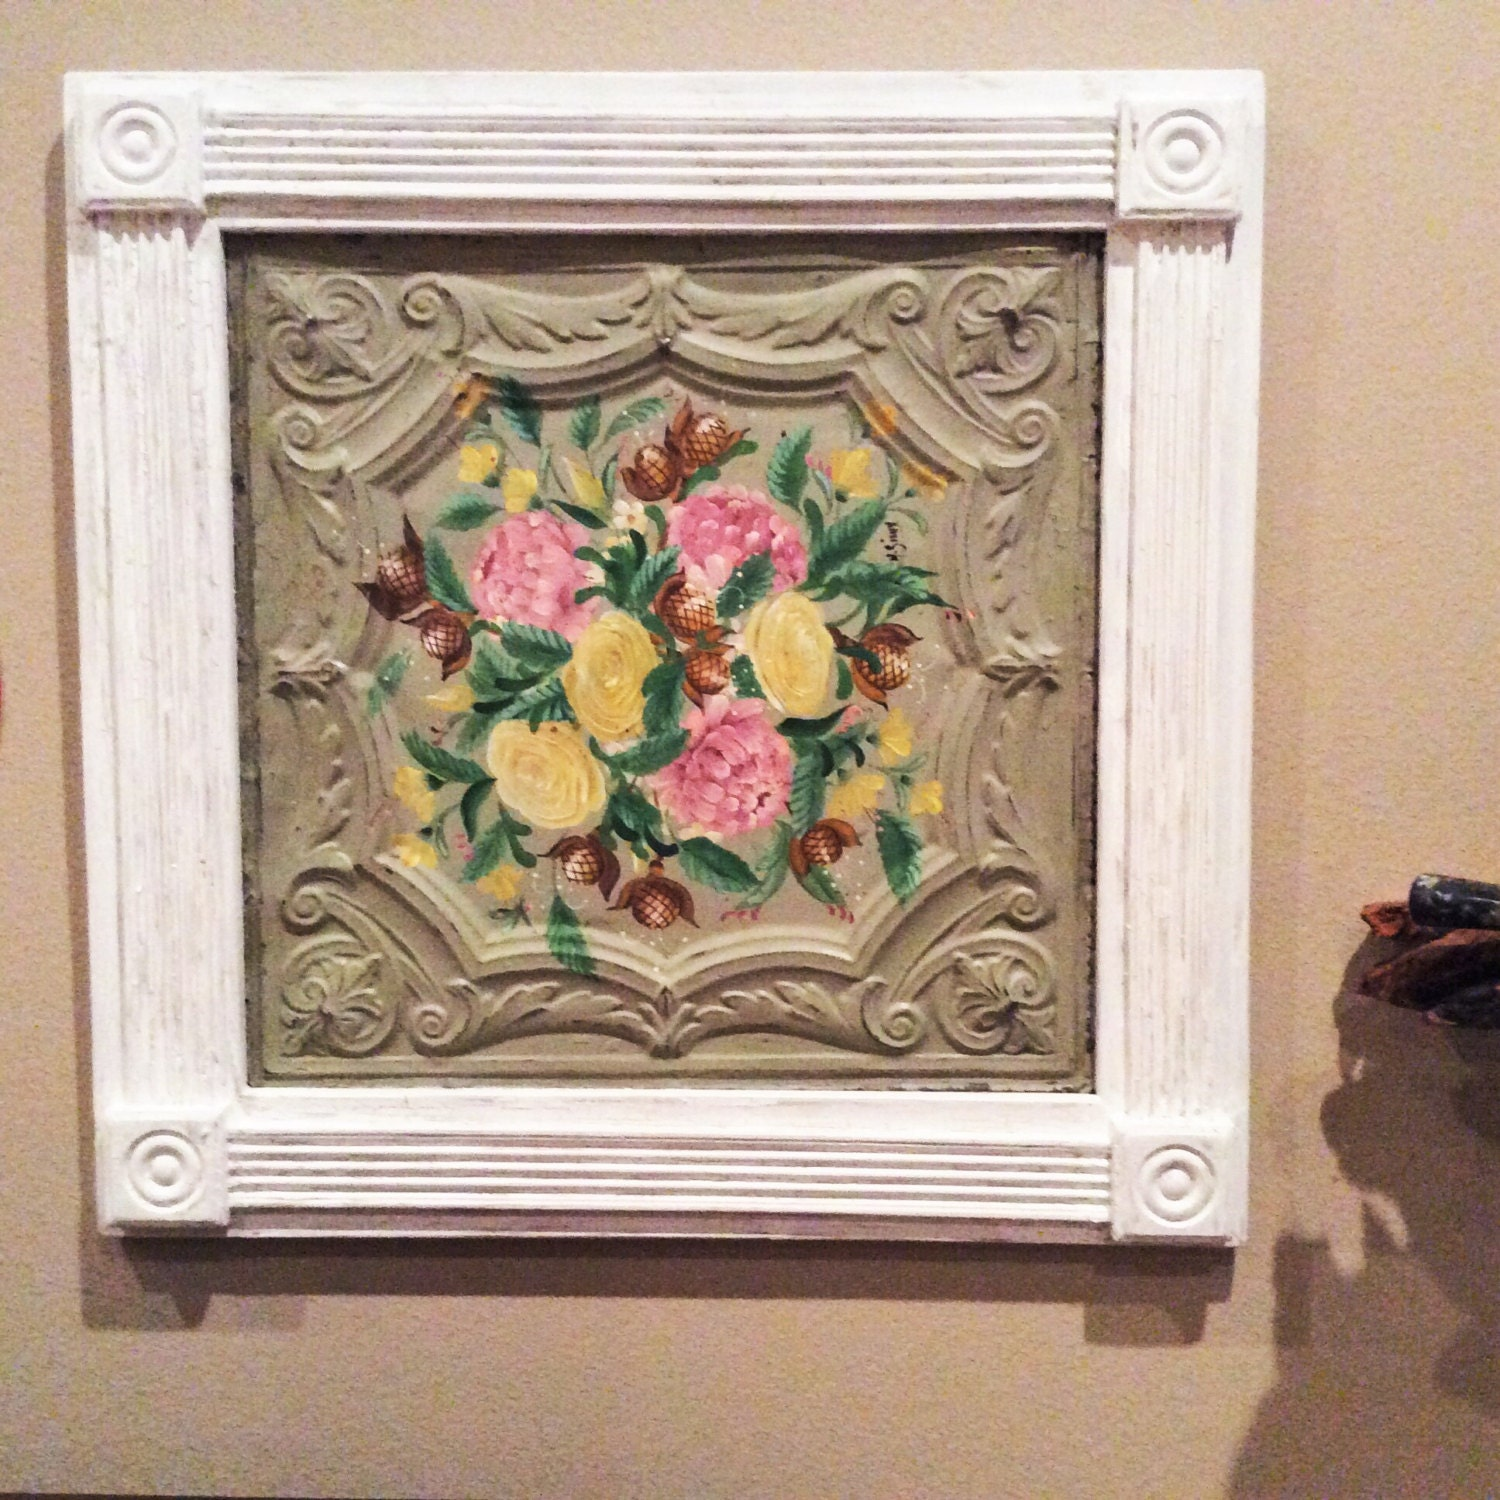 Shabby chic antique ceiling tile with hand painted flowers for Shabby chic wall tiles